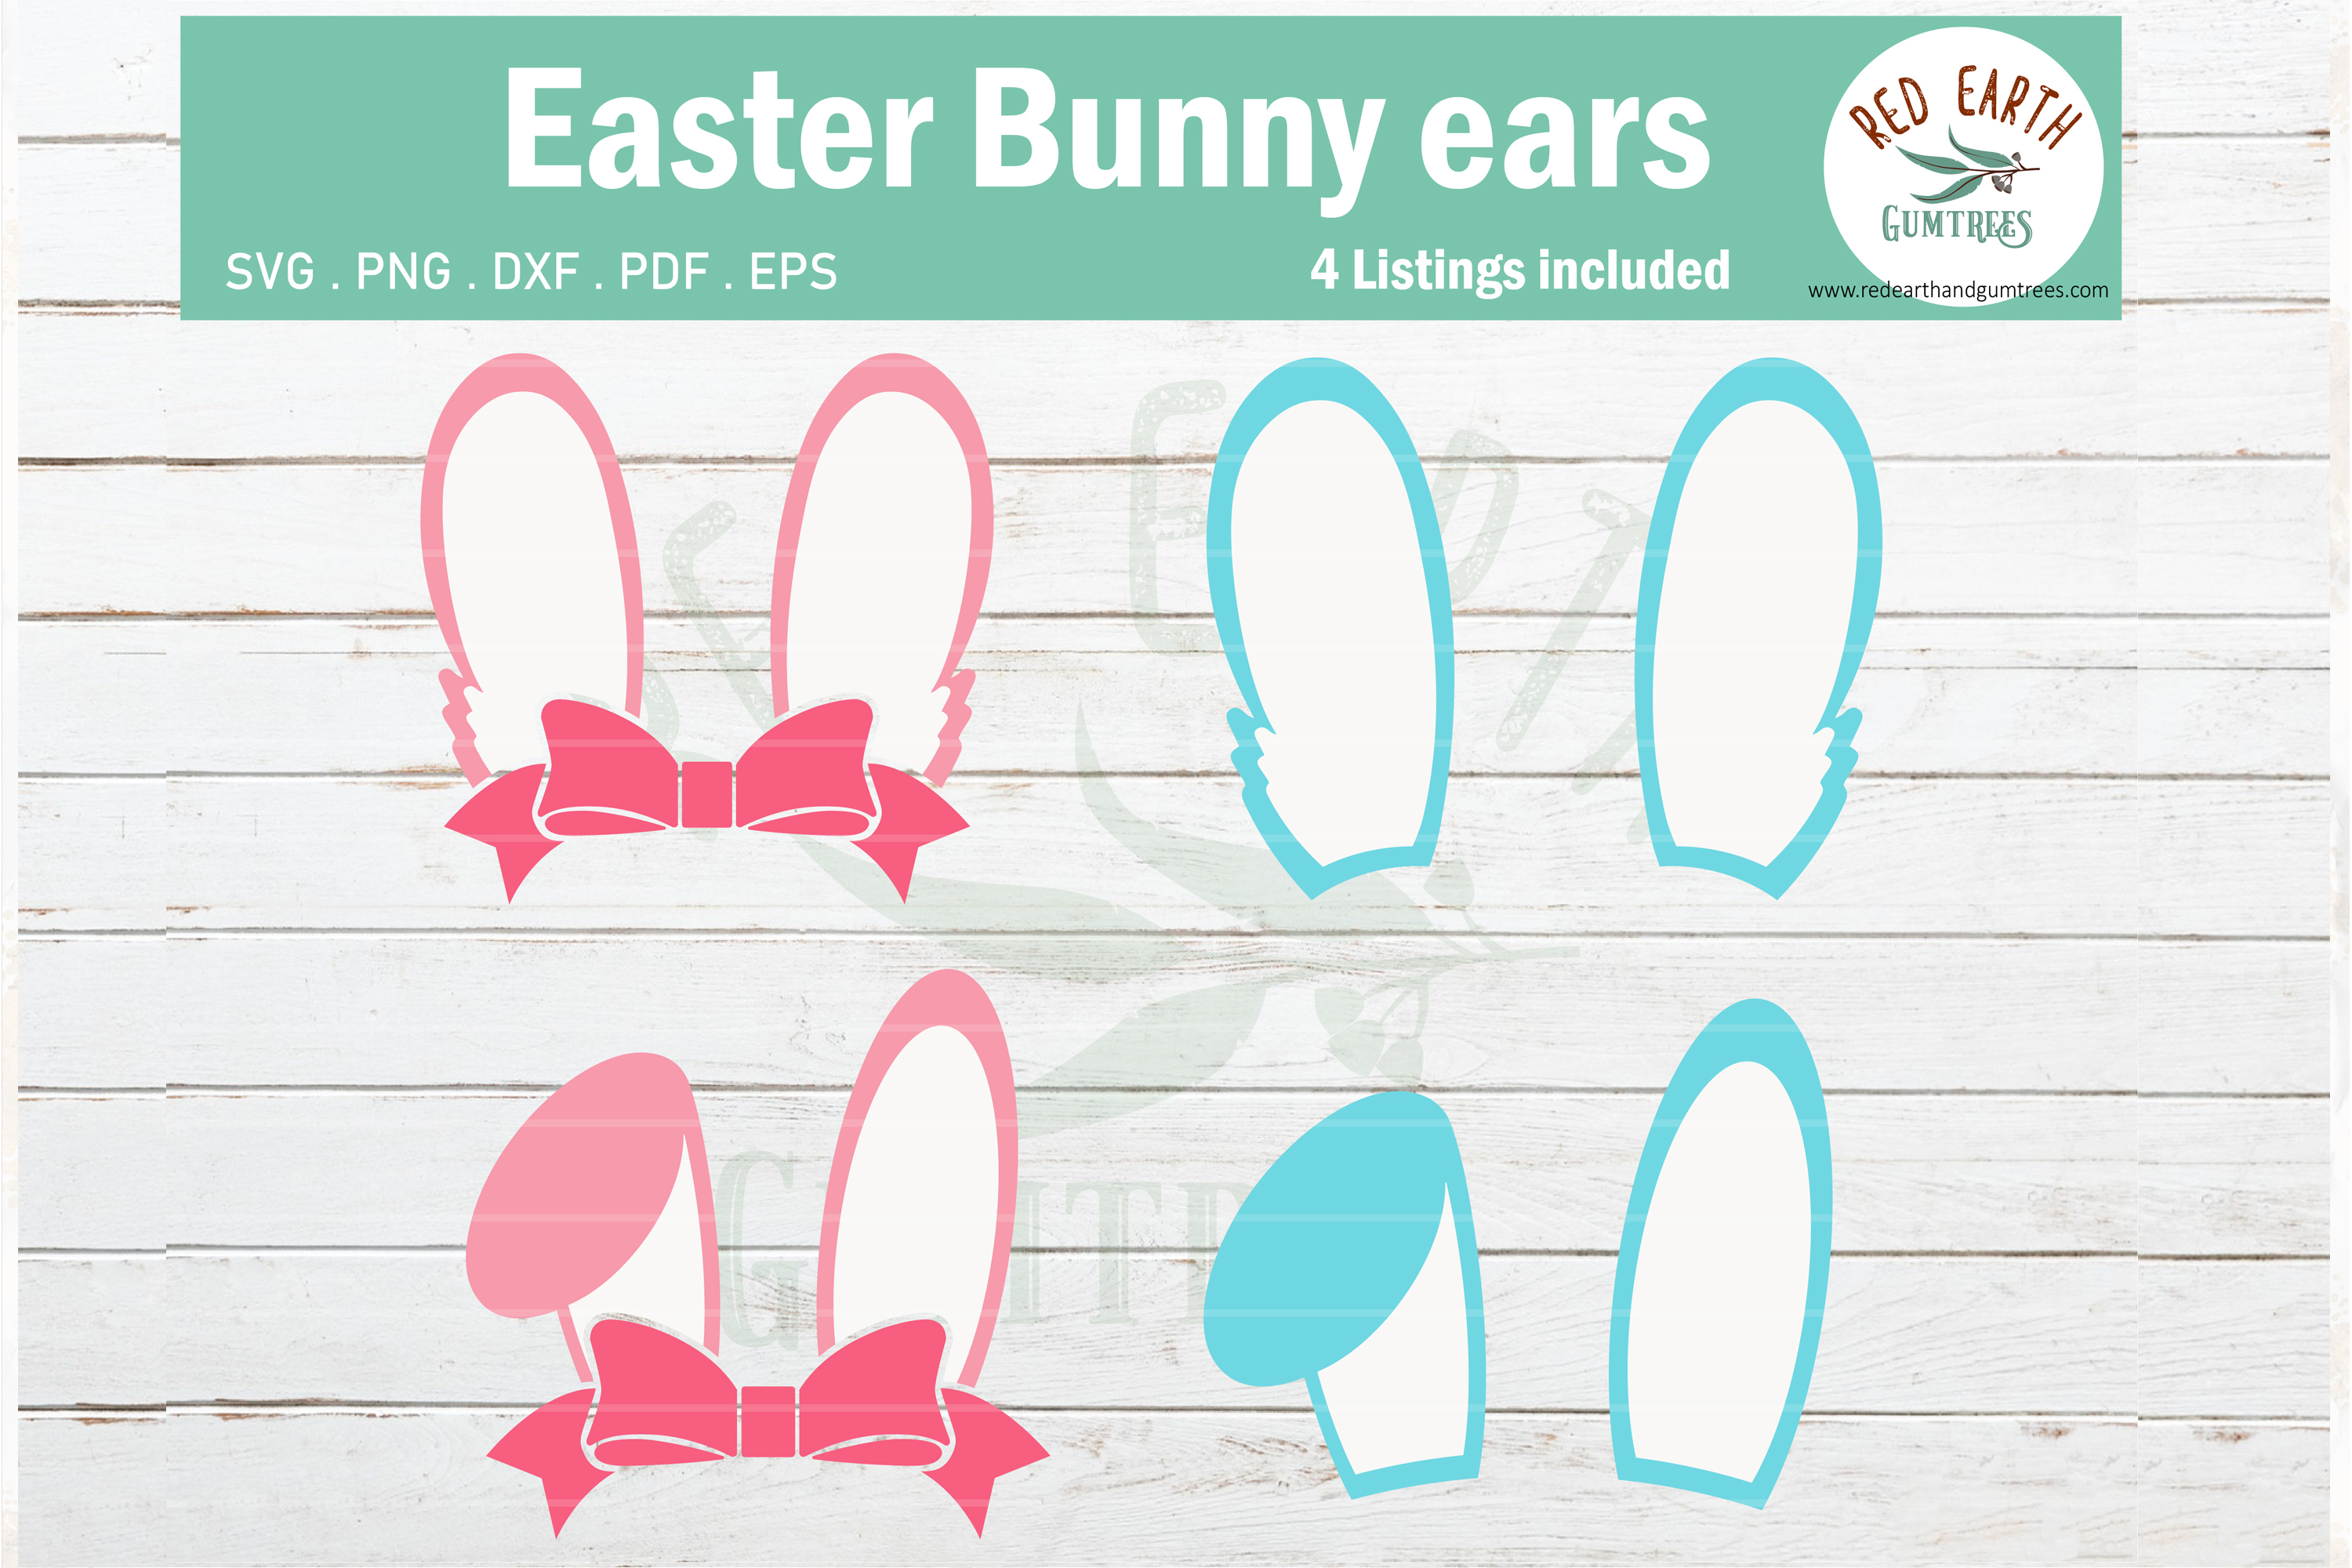 Download Free Easter Bunny Ears Pink With Bow Graphic By Redearth And Gumtrees for Cricut Explore, Silhouette and other cutting machines.